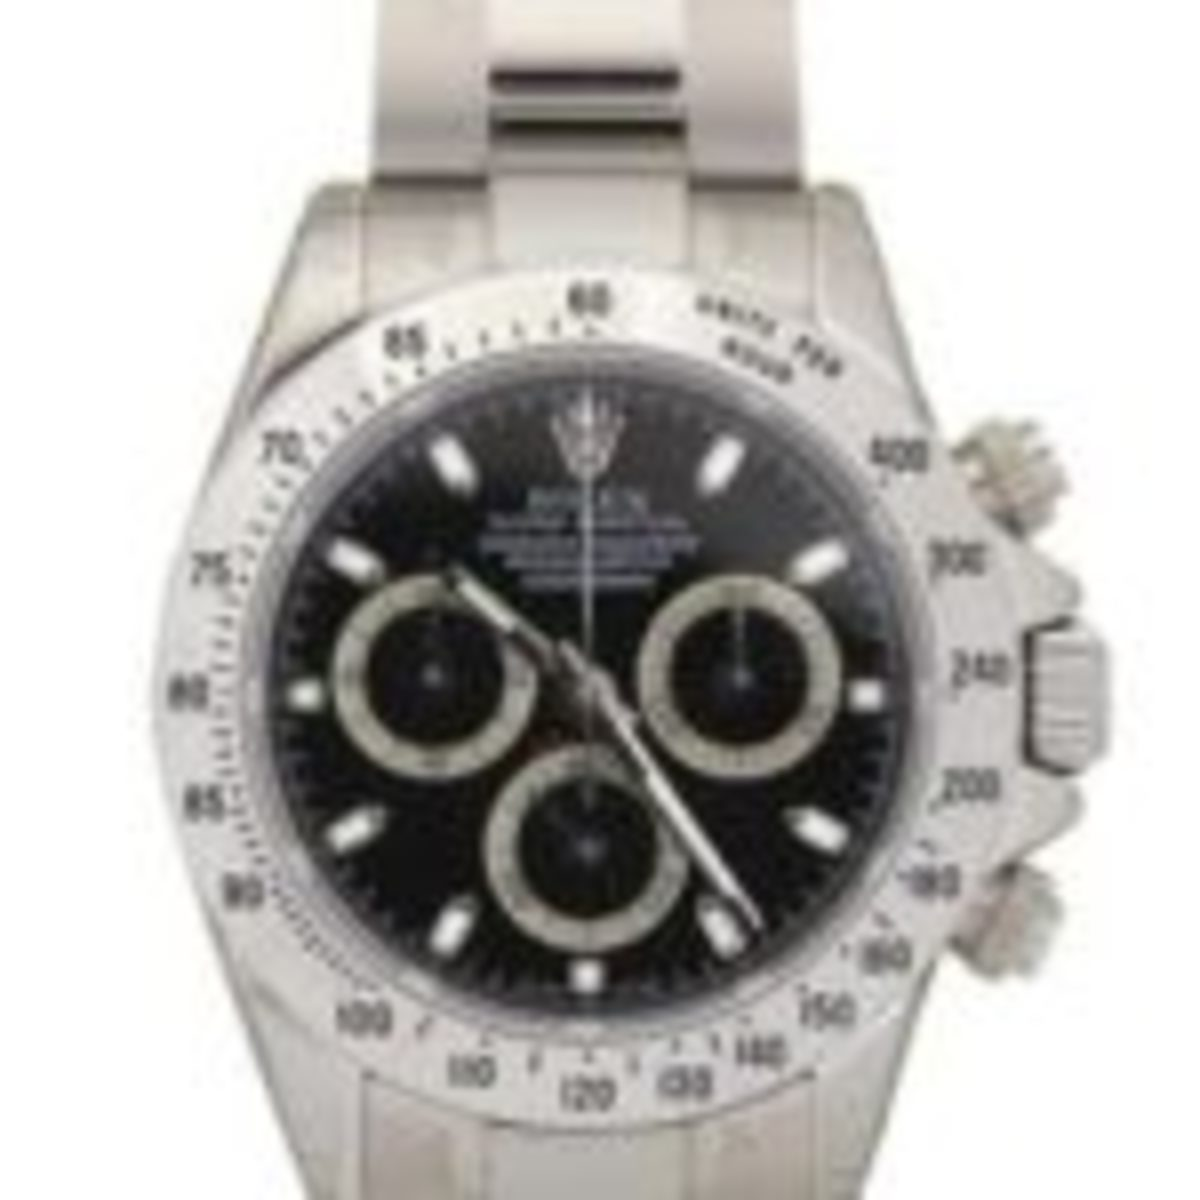 This Rolex black Dial Cosmograph Daytona stainless steel wristwatch, Ref: 116520, flew past high estimate selling for $15,730.